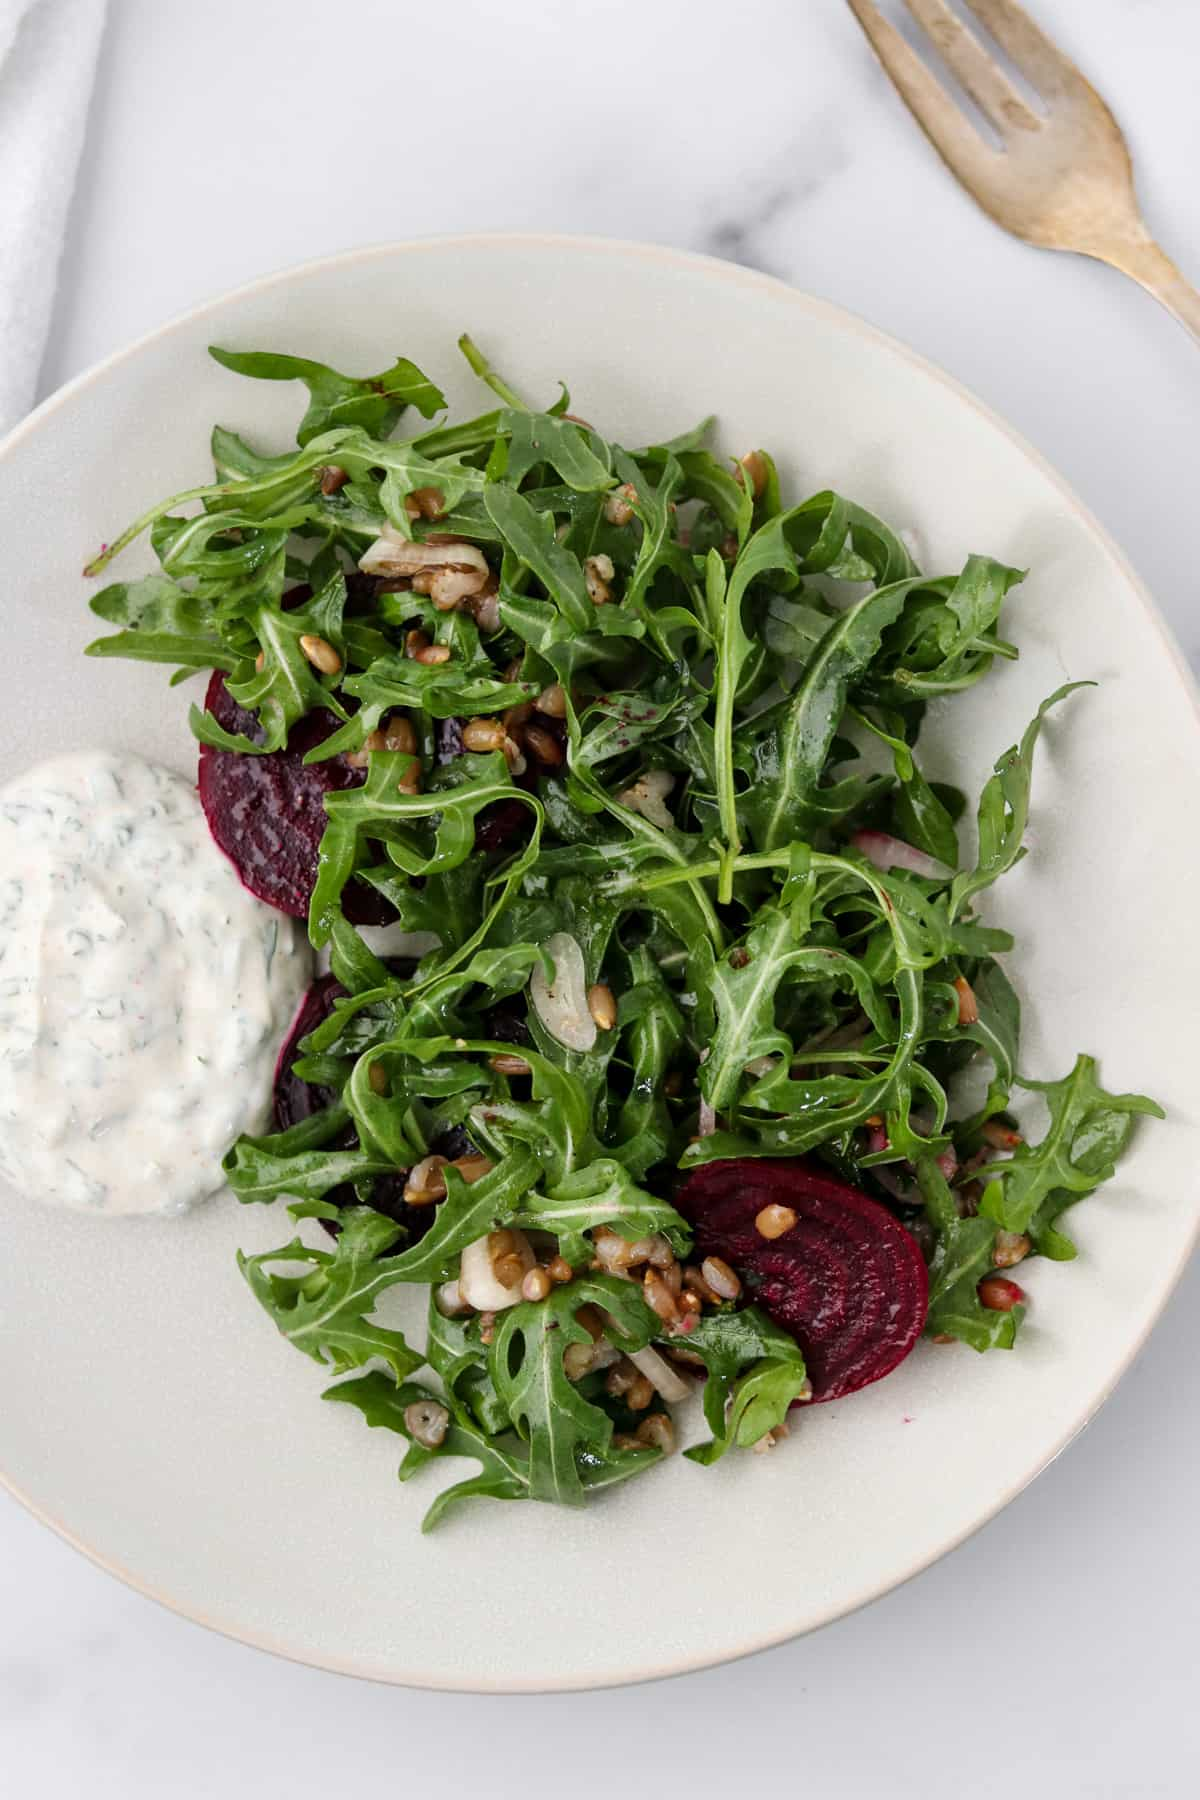 Roasted beet salad on a plate with a creamy sauce.